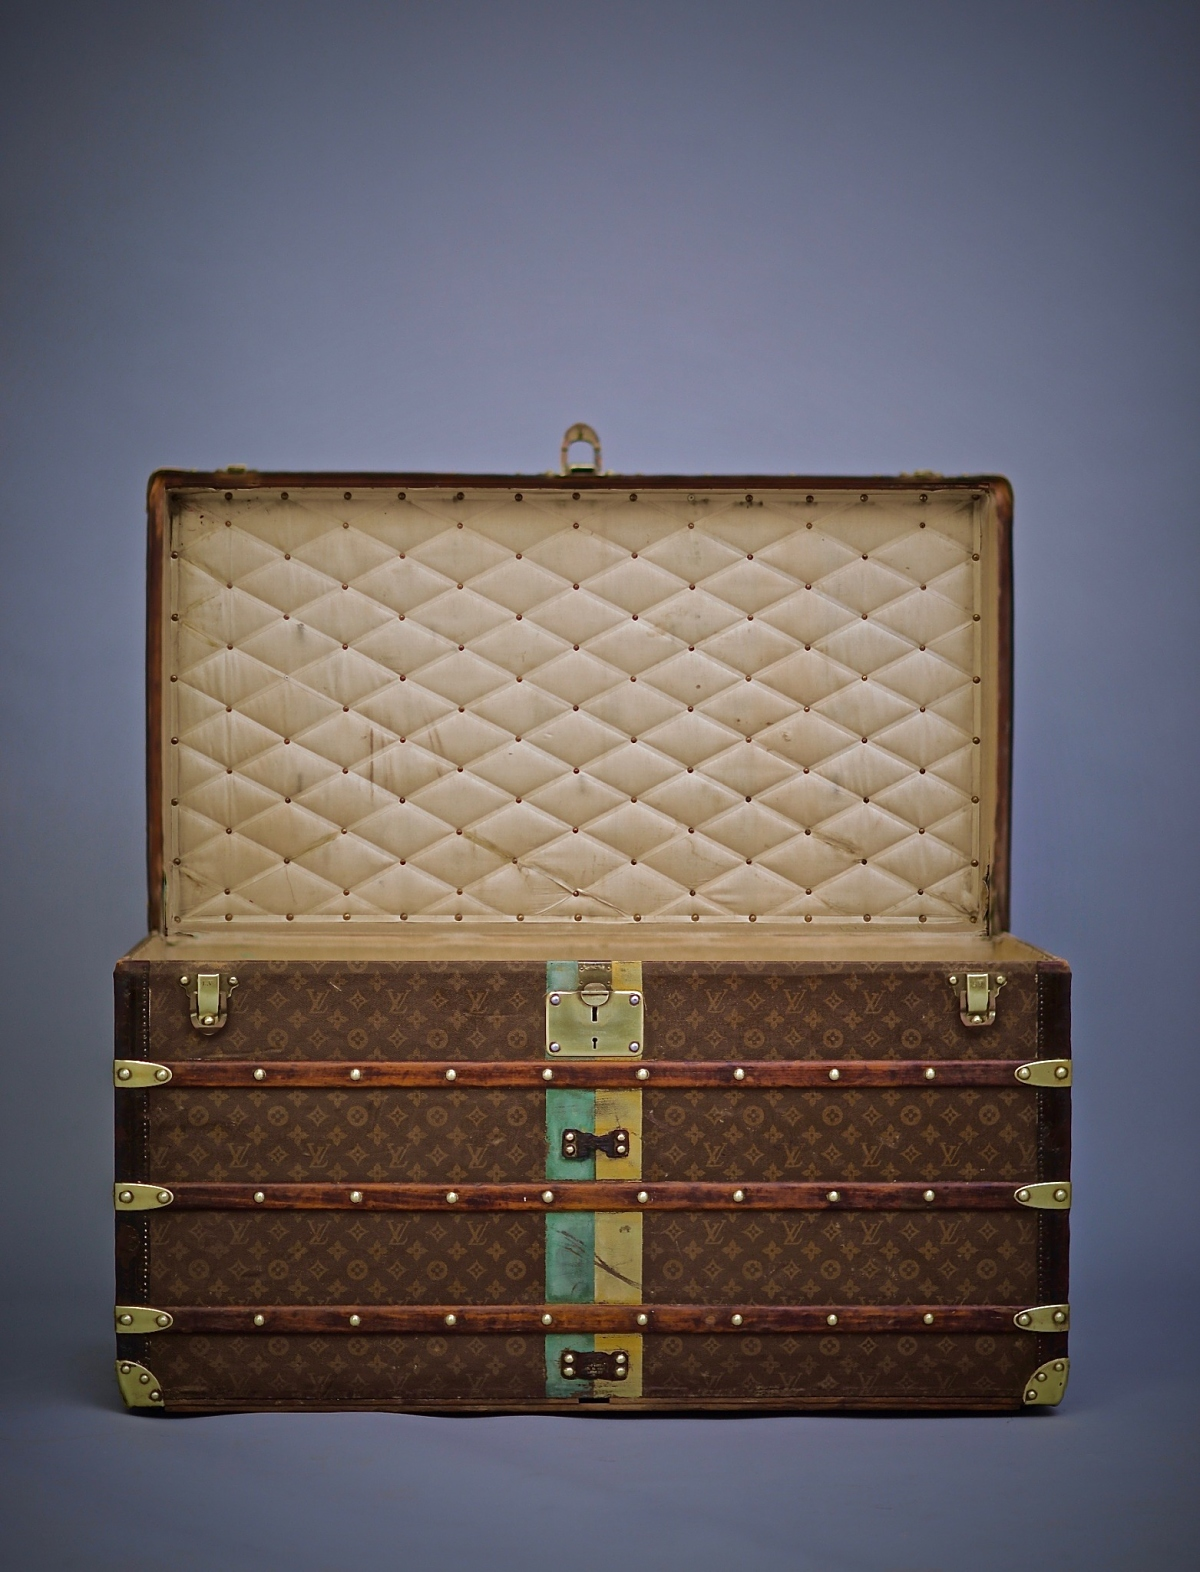 the-well-traveled-trunk-louis-vuitton-thumbnail-product-5687-2